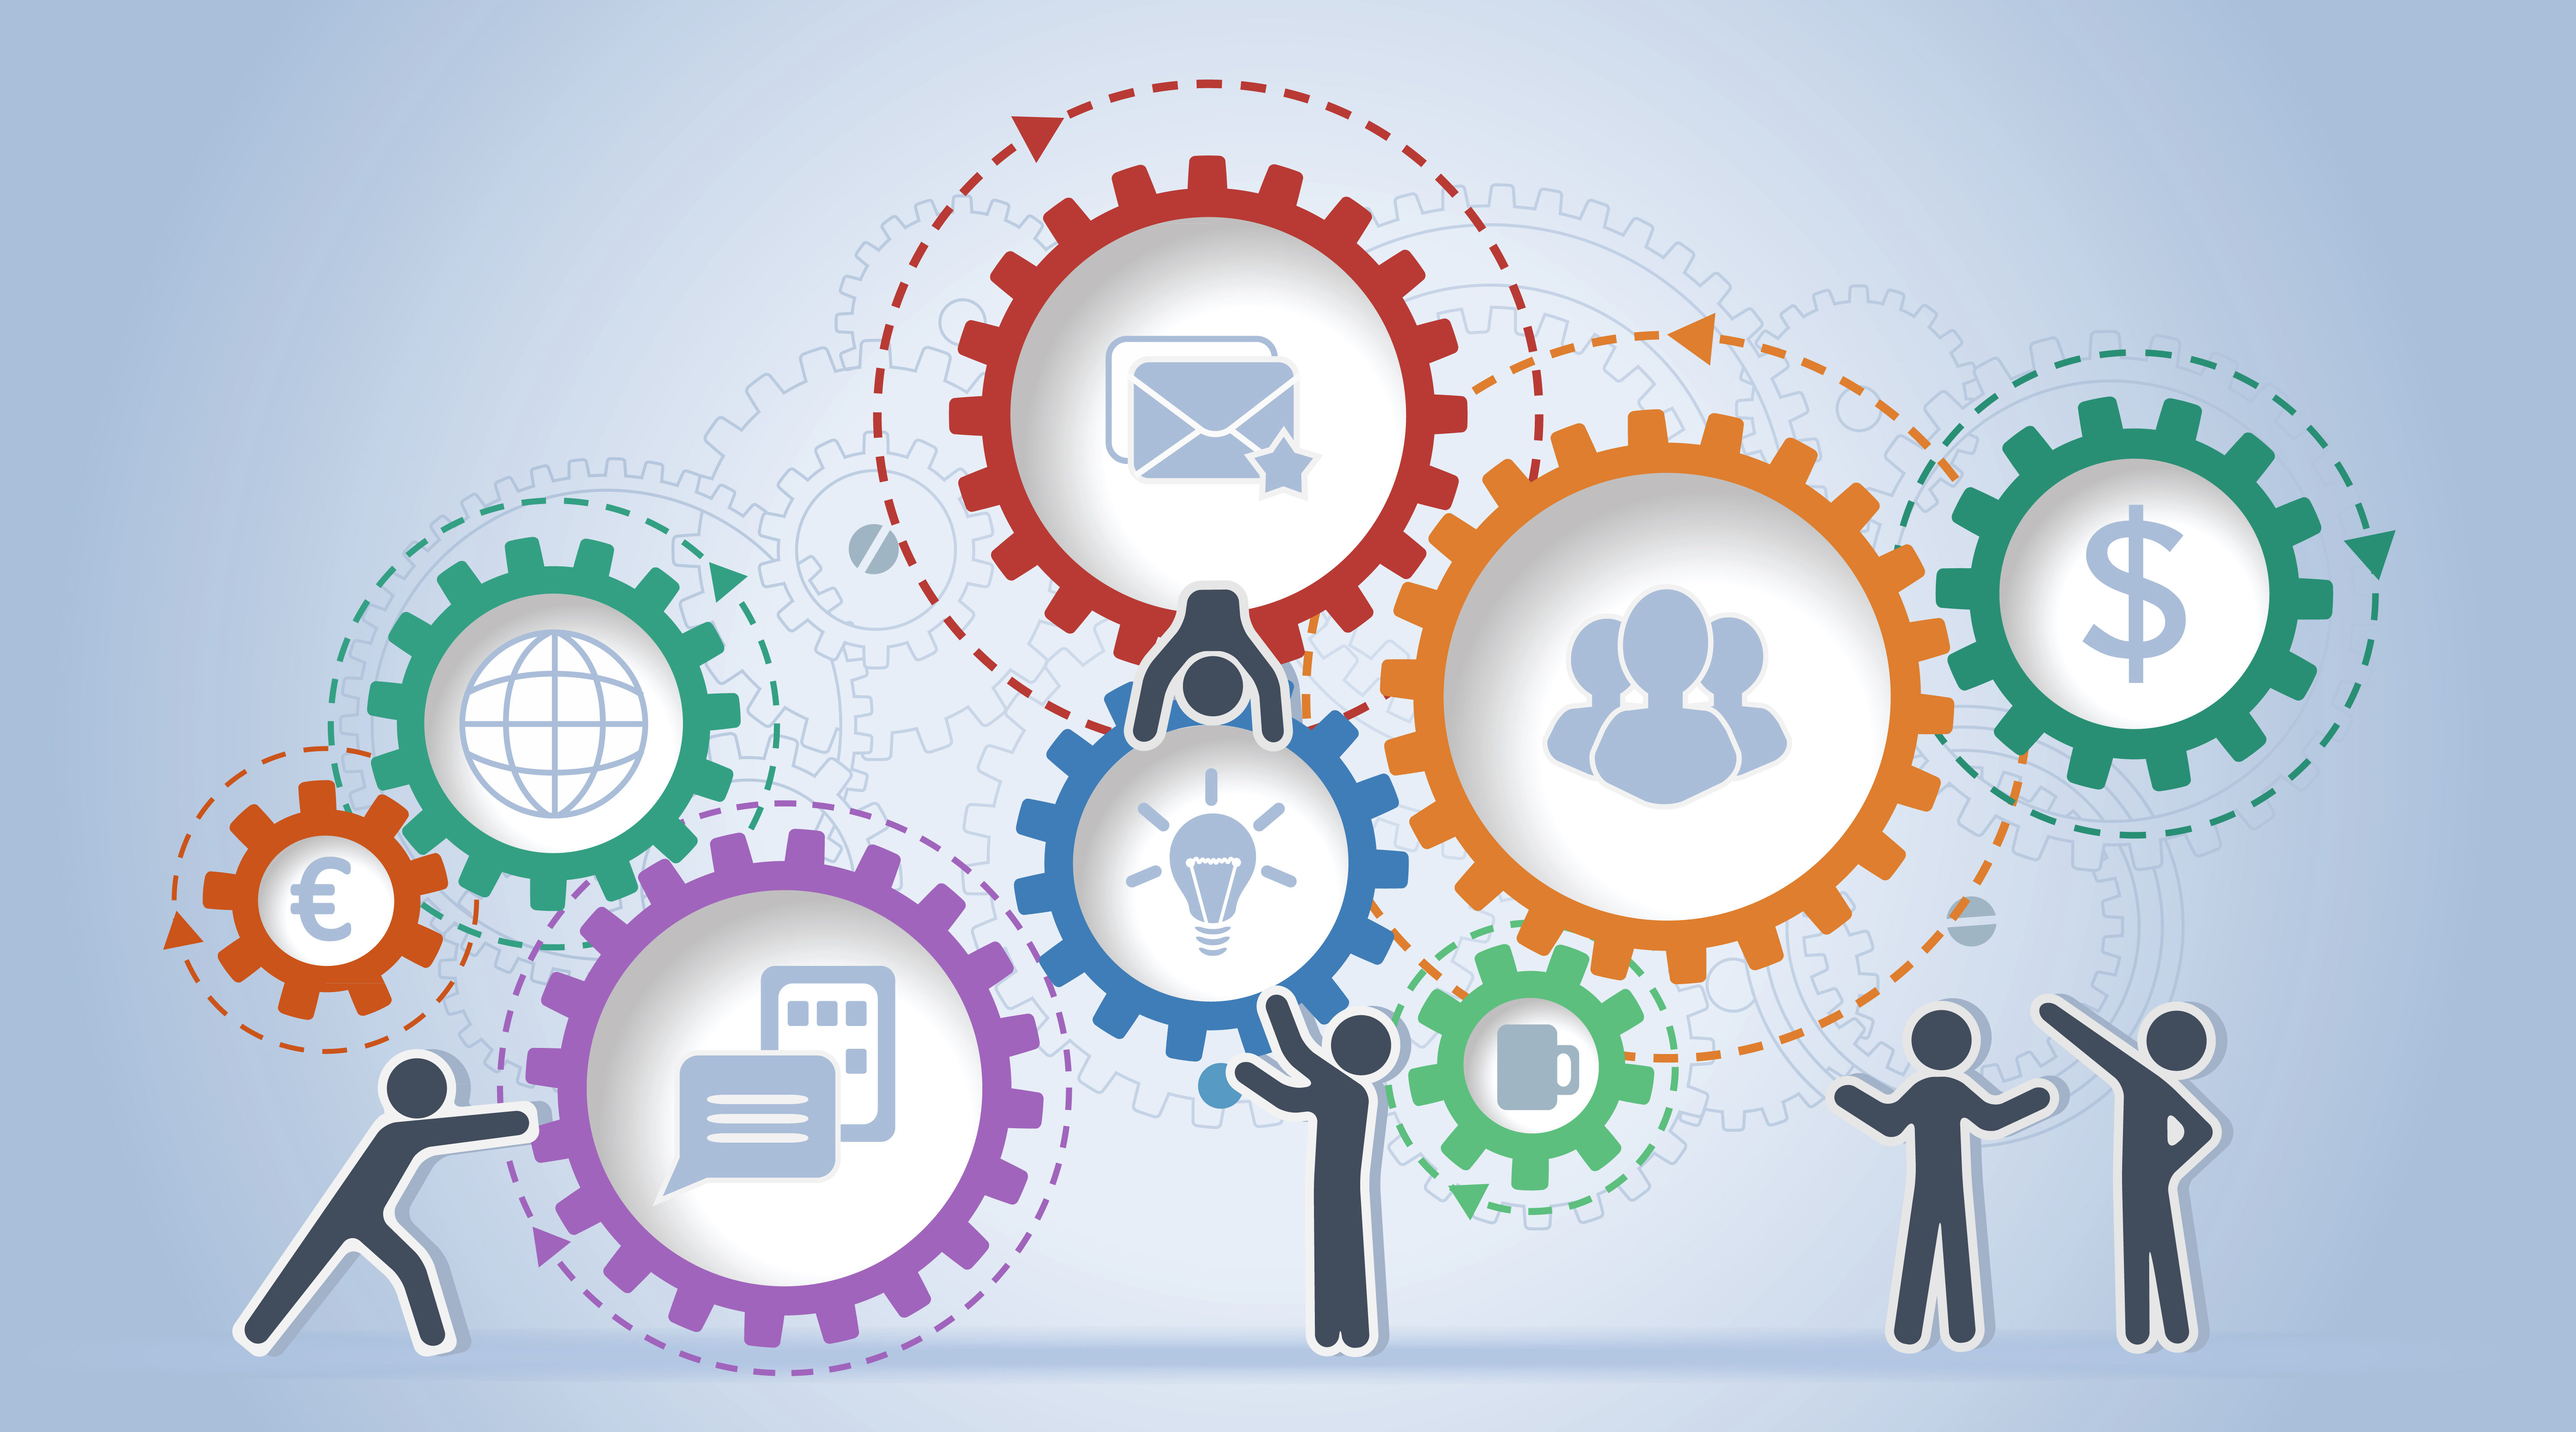 Illustration of people assembling system of cogs that represent business development and collaboration.